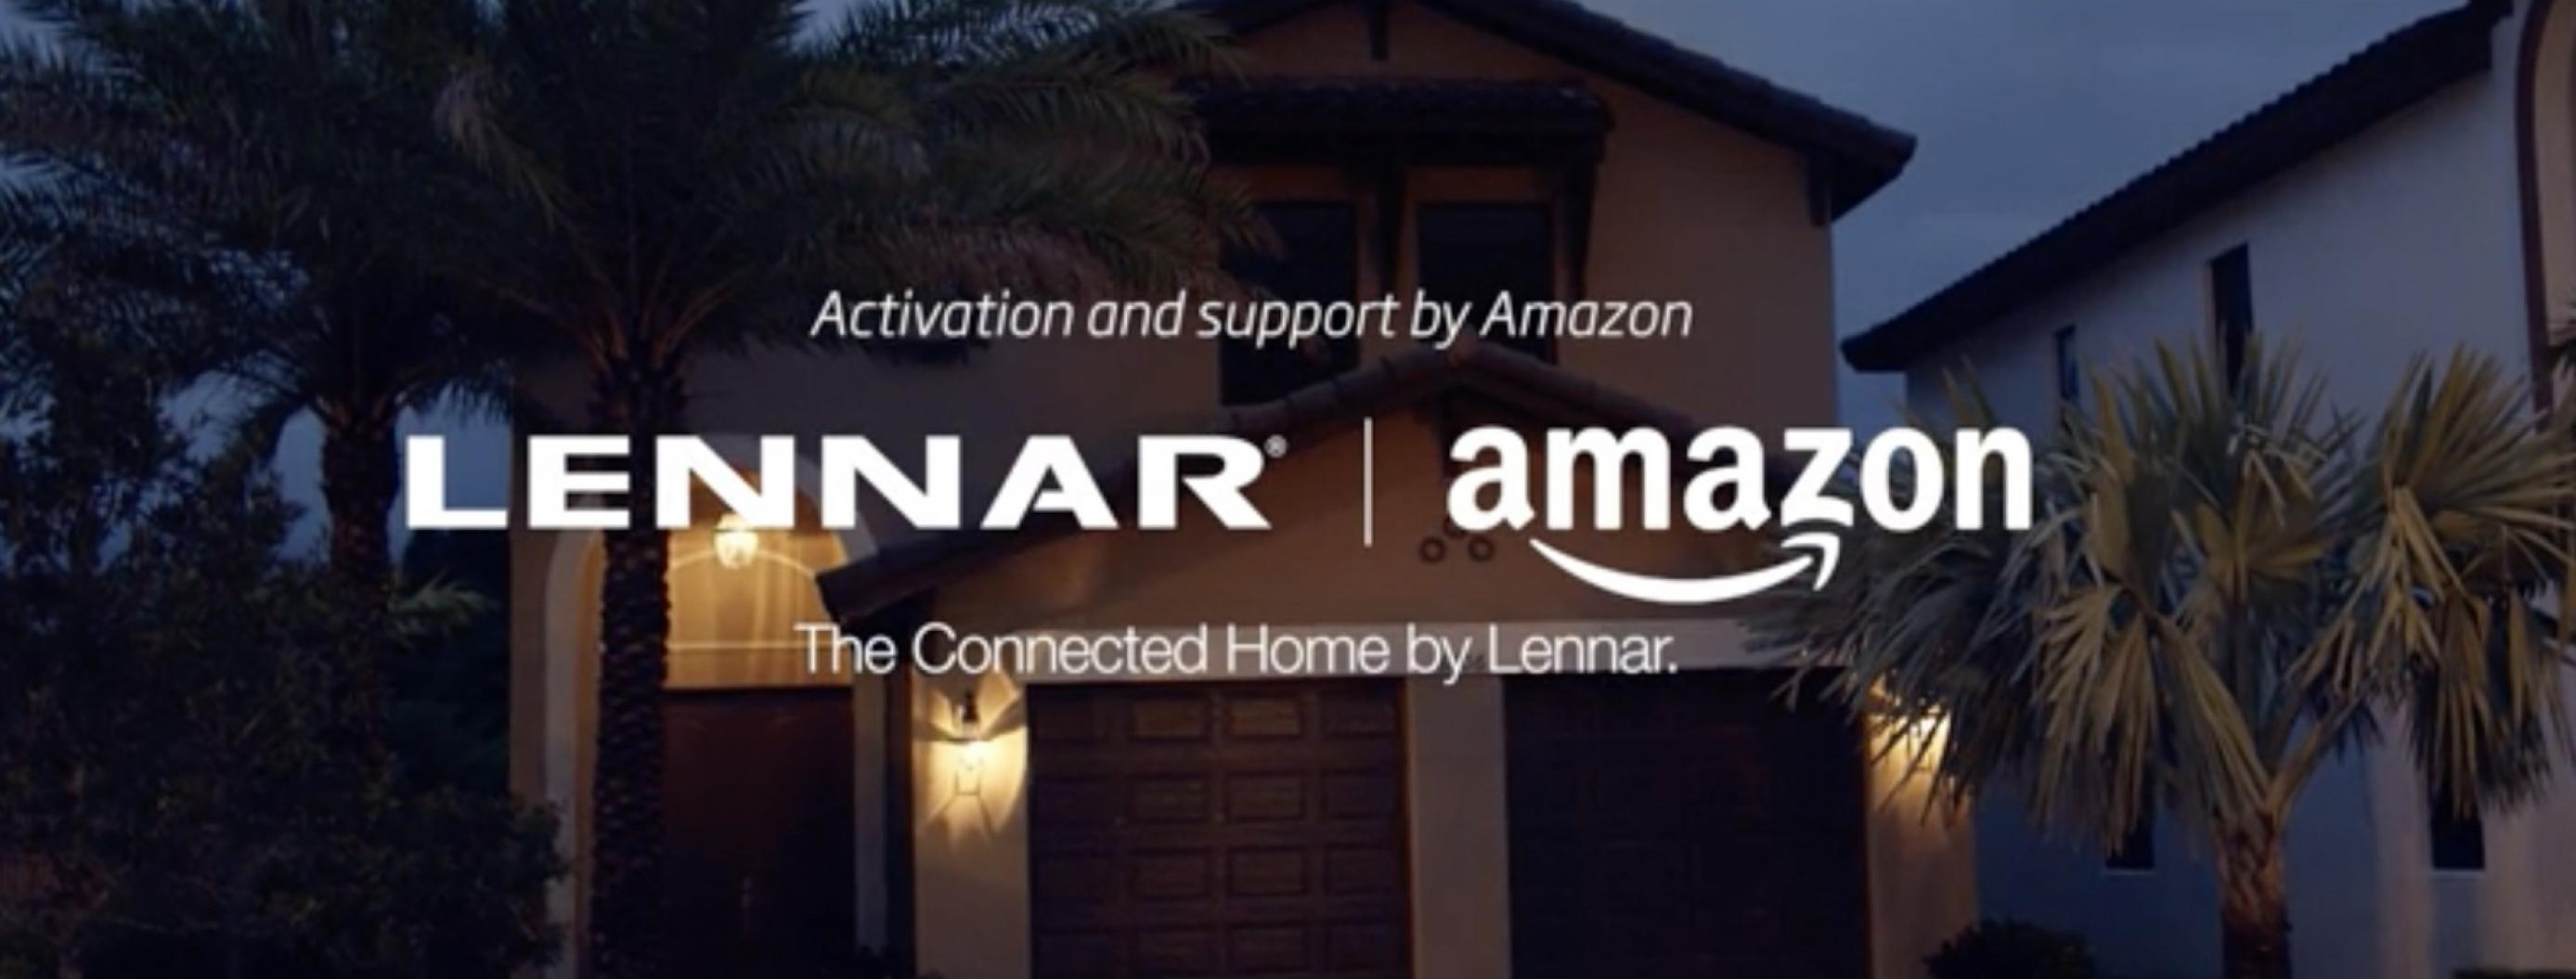 Amazon Joins Forces with Homebuilder Lennar to Use Alexa for Smart Homes